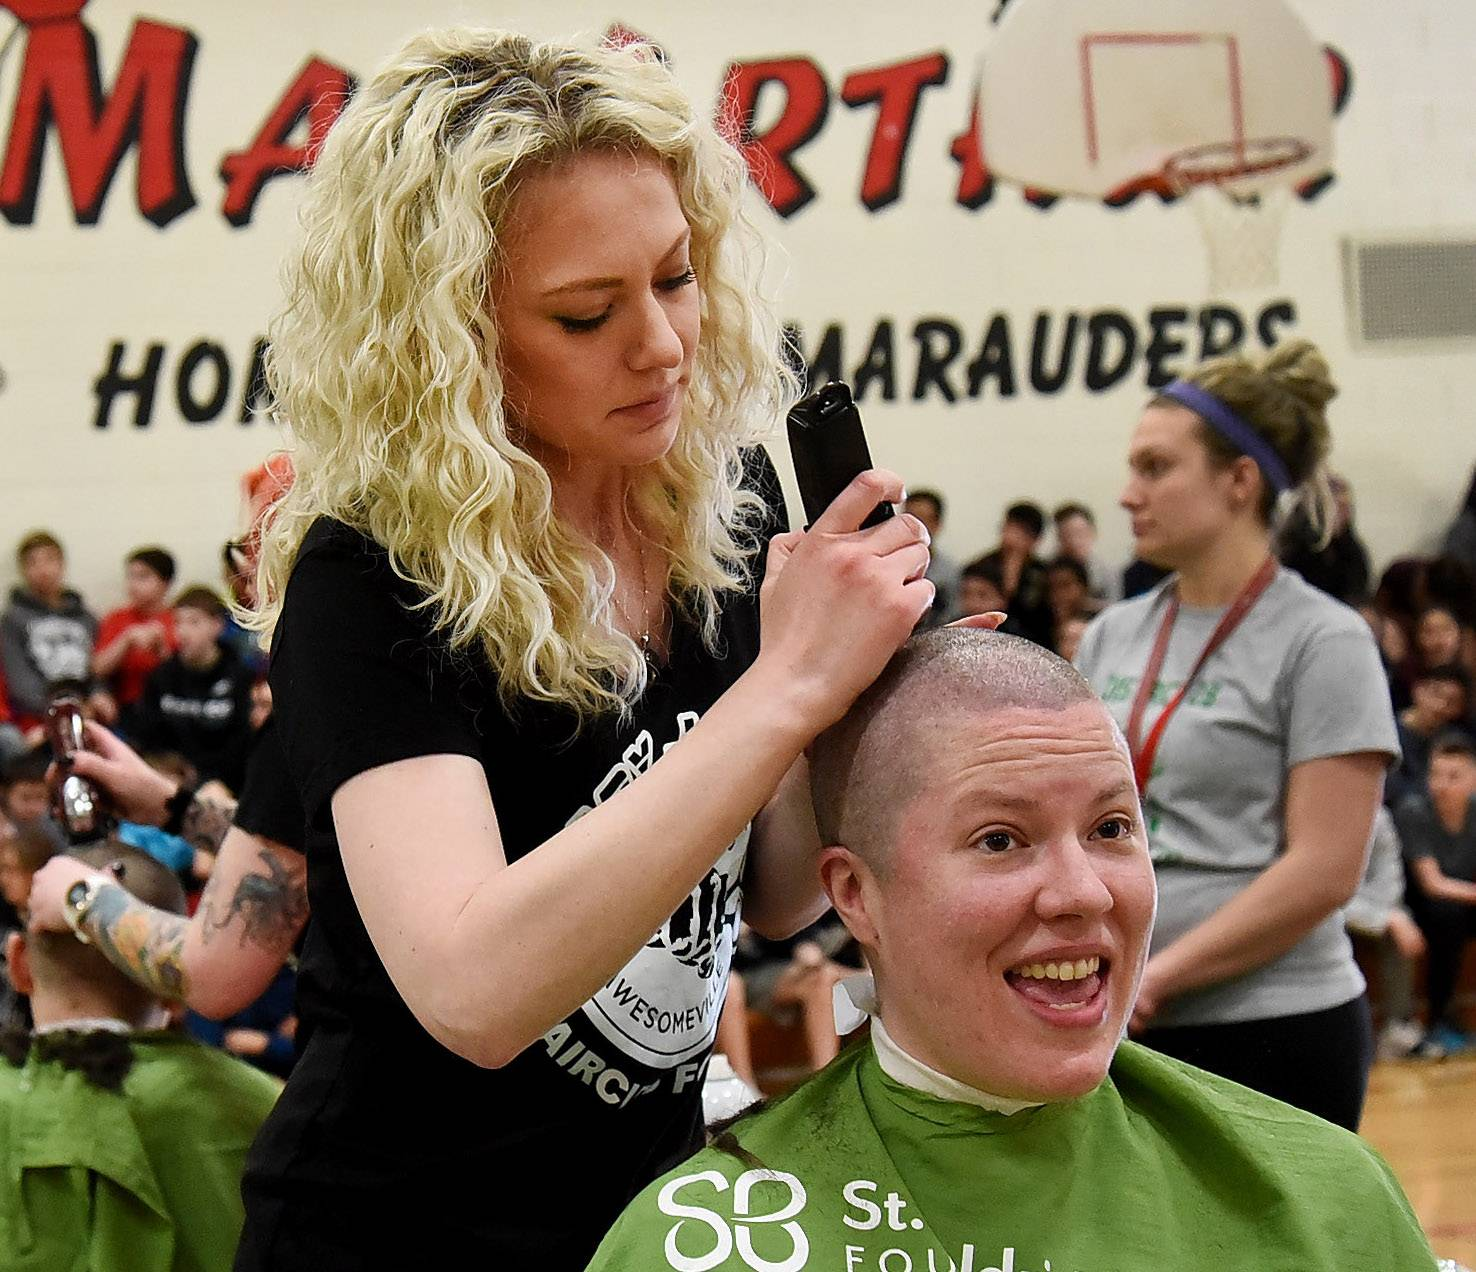 hairrazing fundraiser in prospect heights